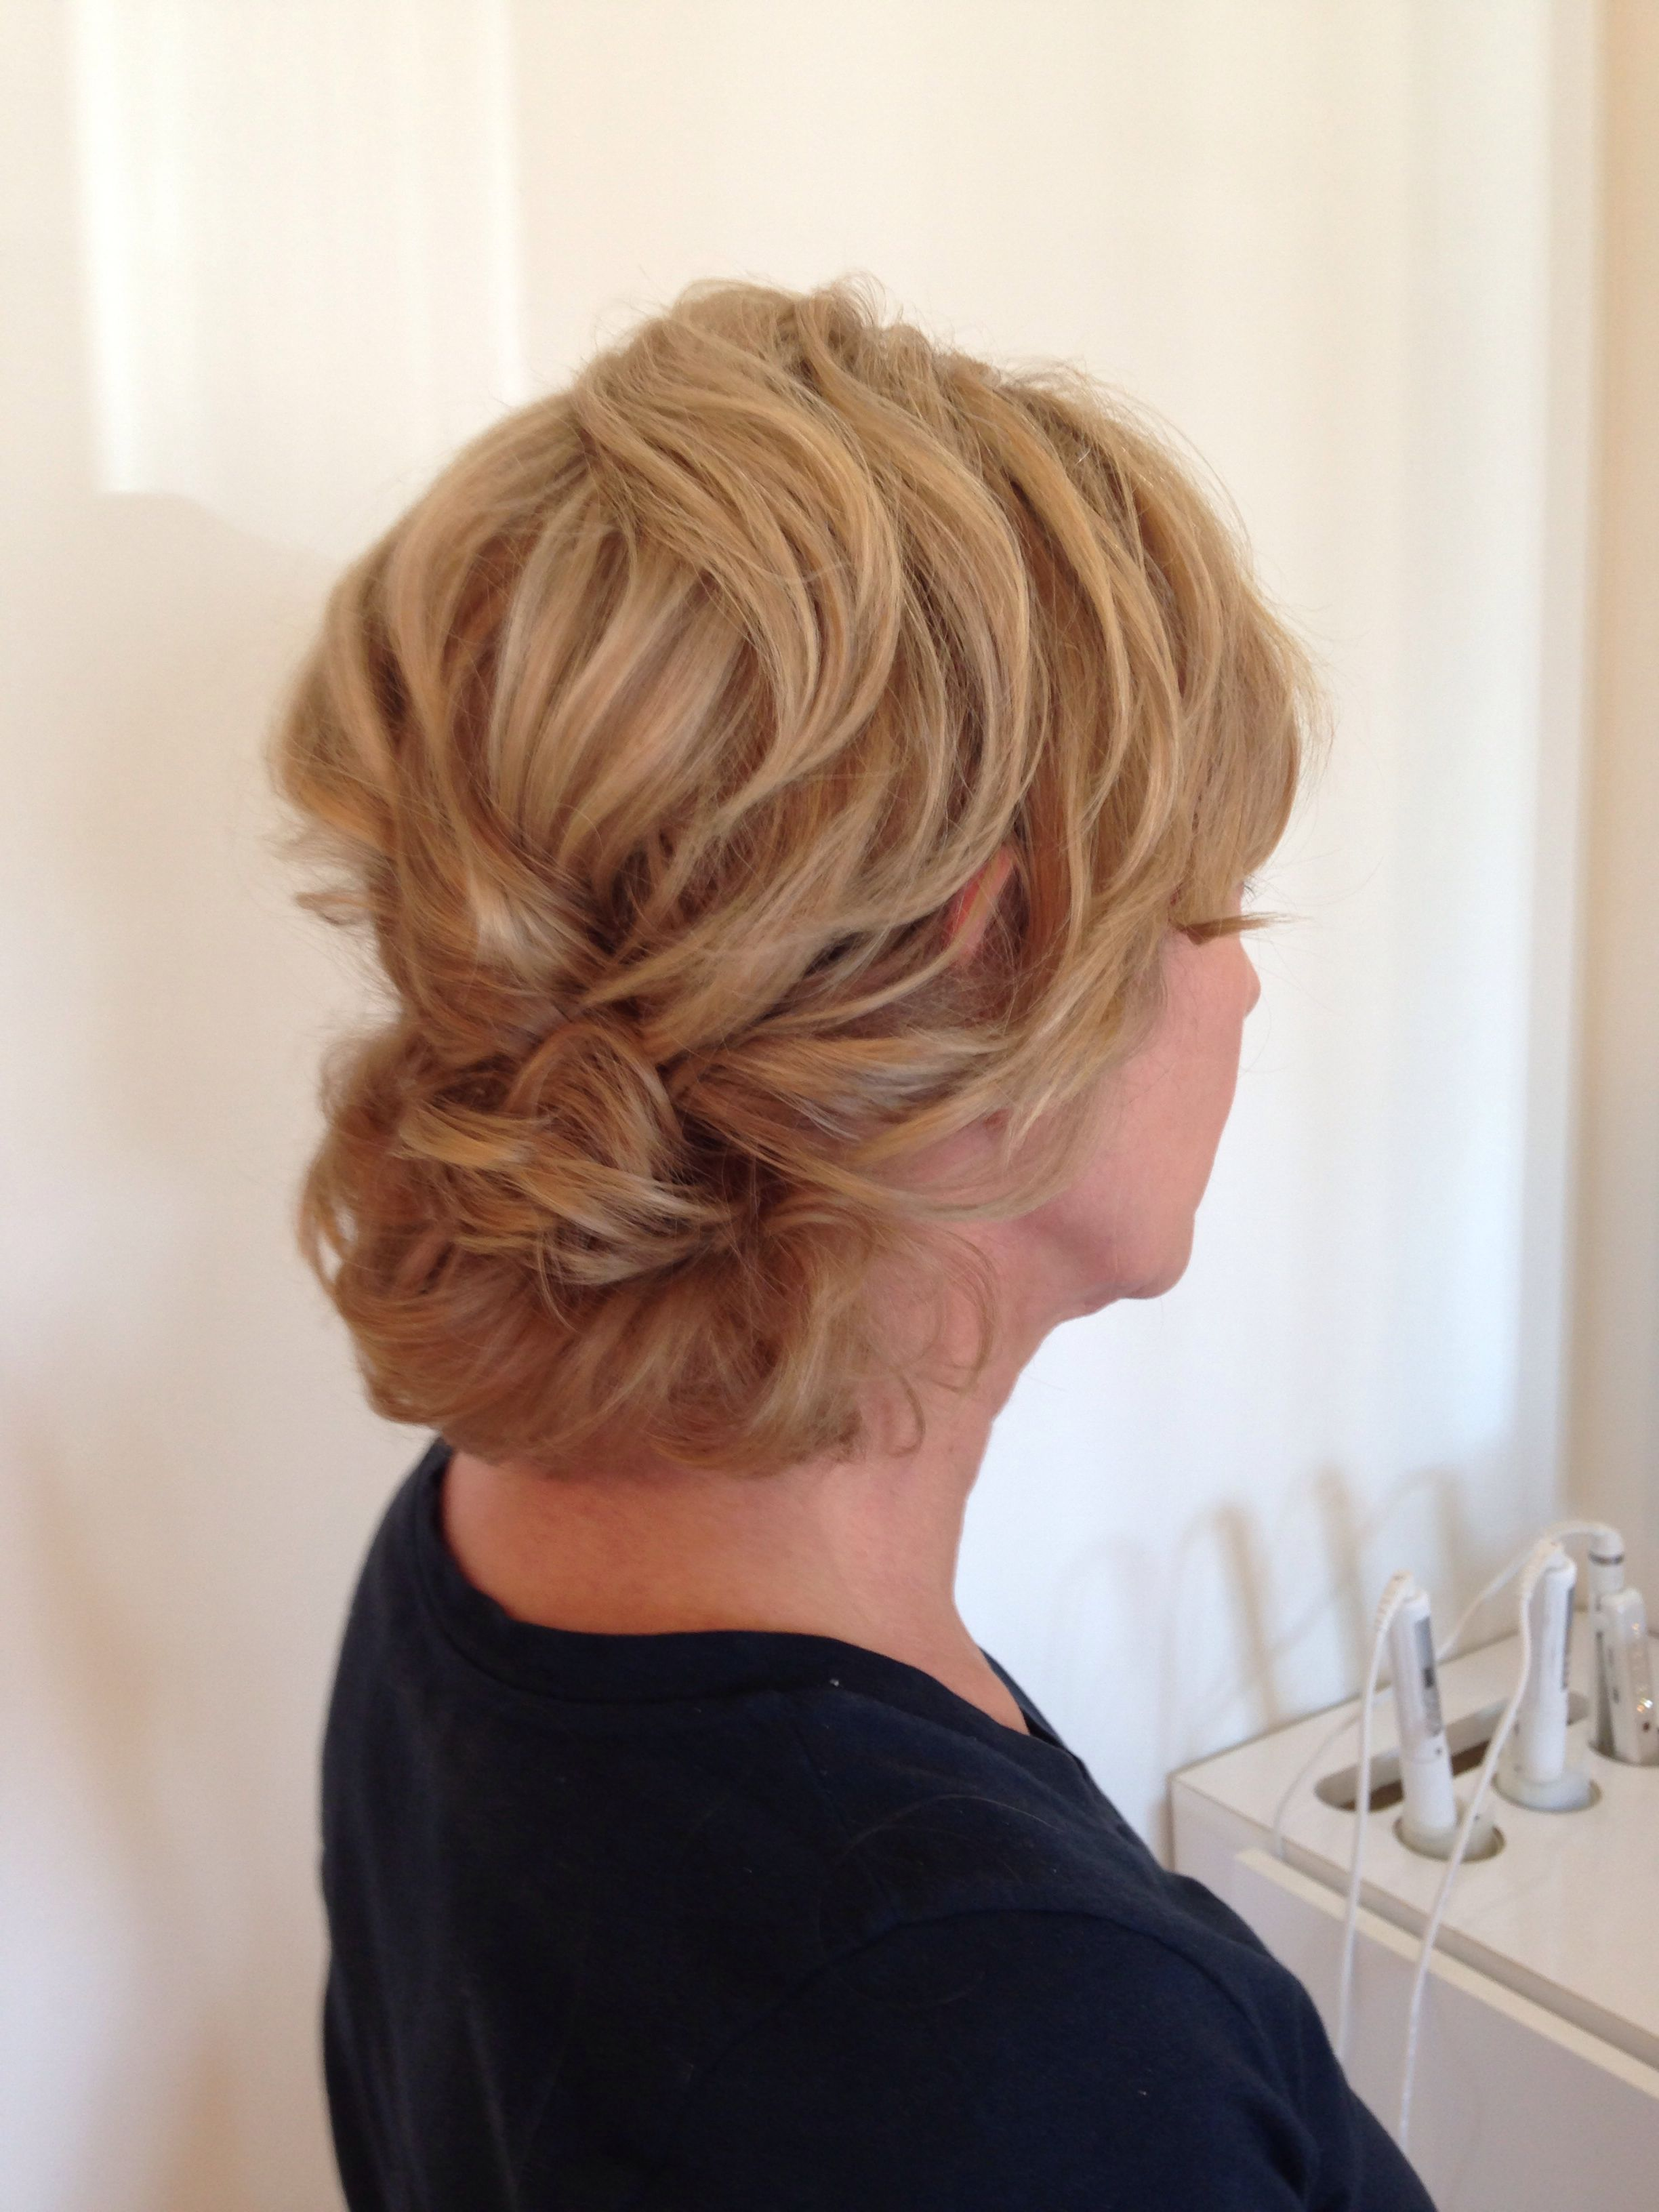 Mother Of The Bride Mother Of The Bride Hair Mother Of The Groom Hairstyles Hair Styles